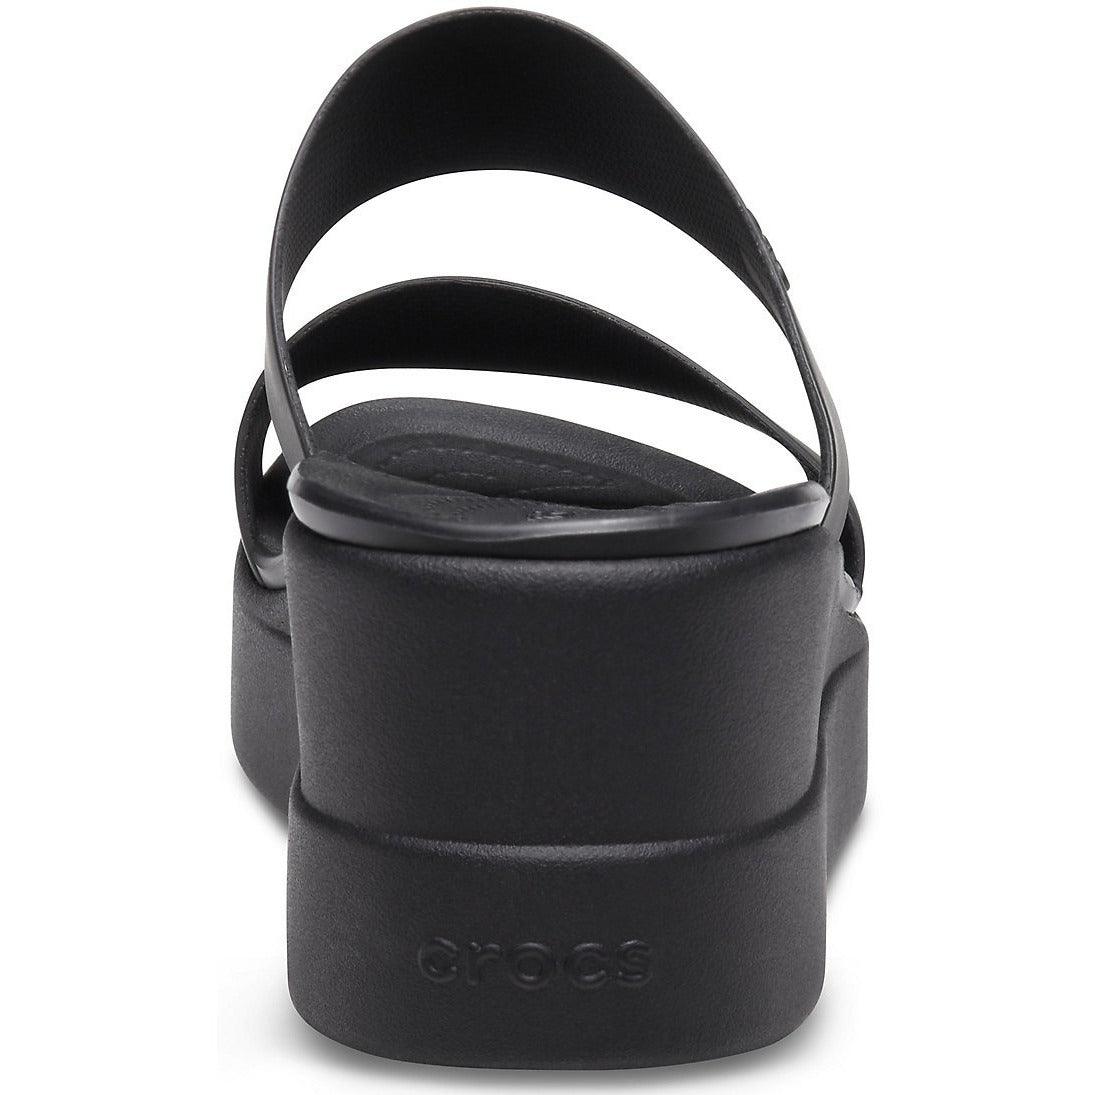 CROCS CROCS BROOKLYN MID WEDGE BLACK/BLACK getset-footwear.myshopify.com